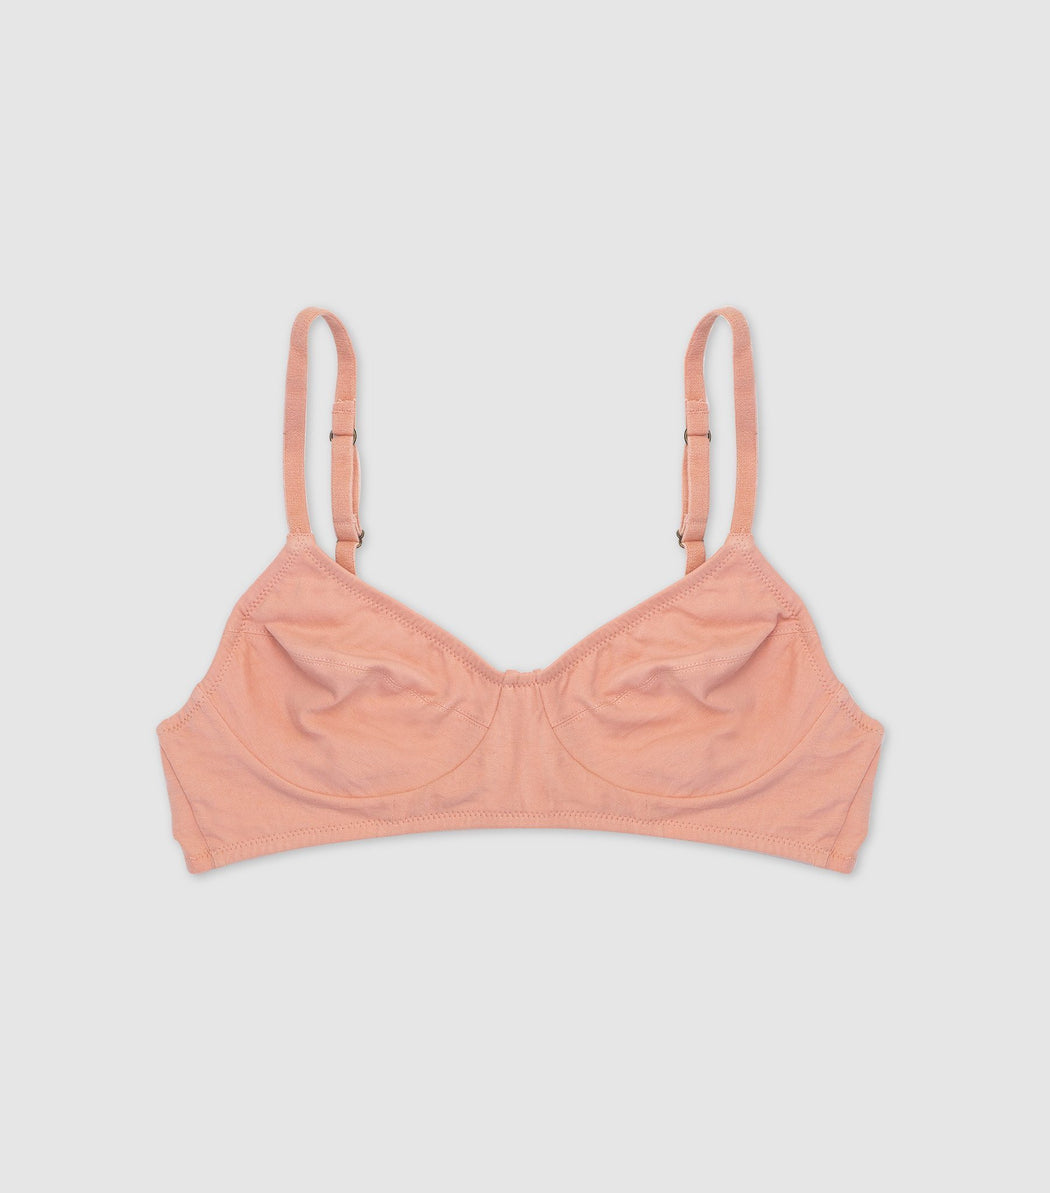 NICO Full Cup Wirefree Bralette Rose - The Lake